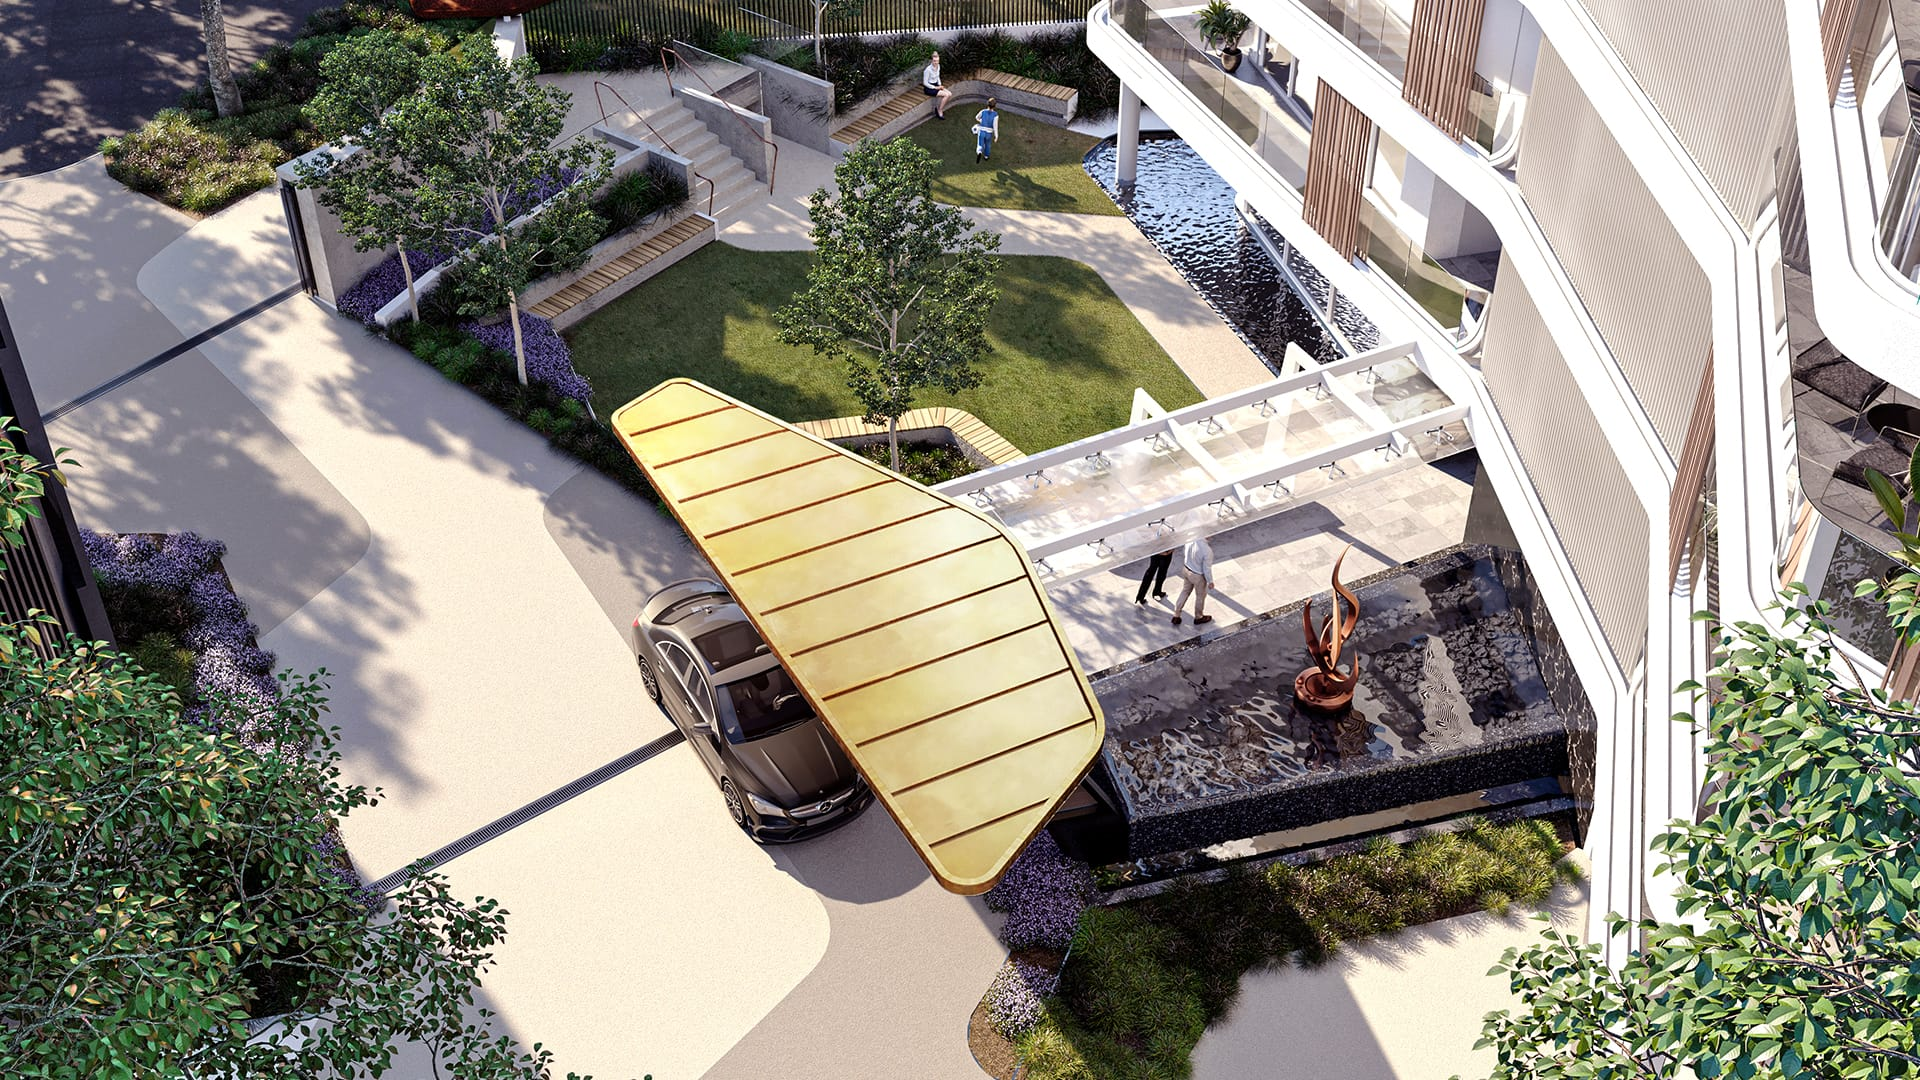 Building entrance with garden and water features